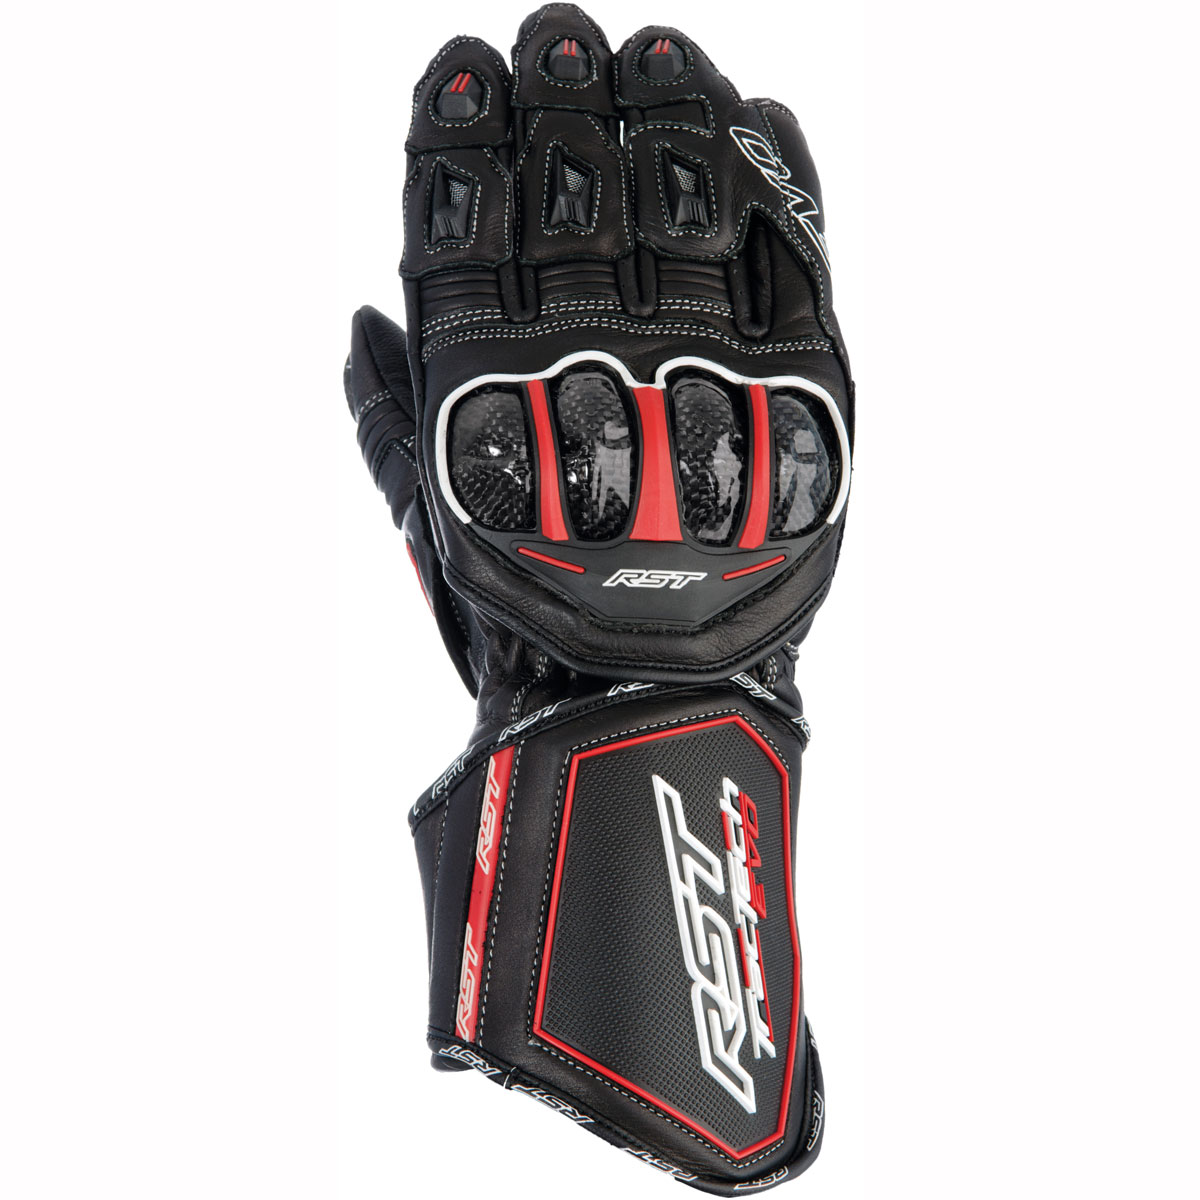 Motorcycle gloves europe - 5